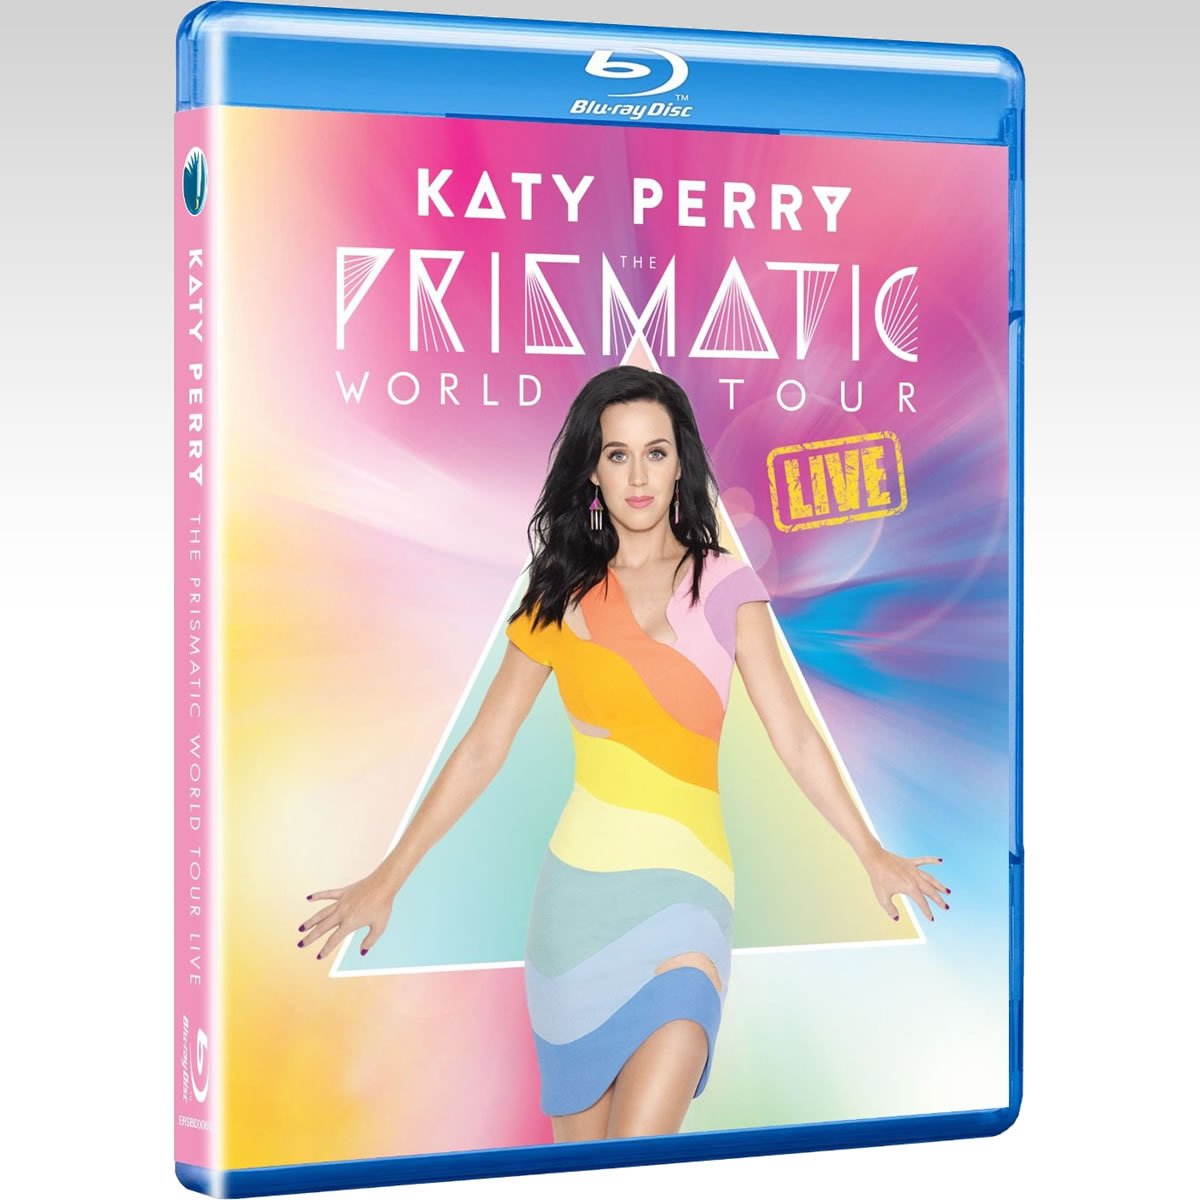 KATE PERRY: THE PRISMATIC WORLD TOUR LIVE (BLU-RAY)